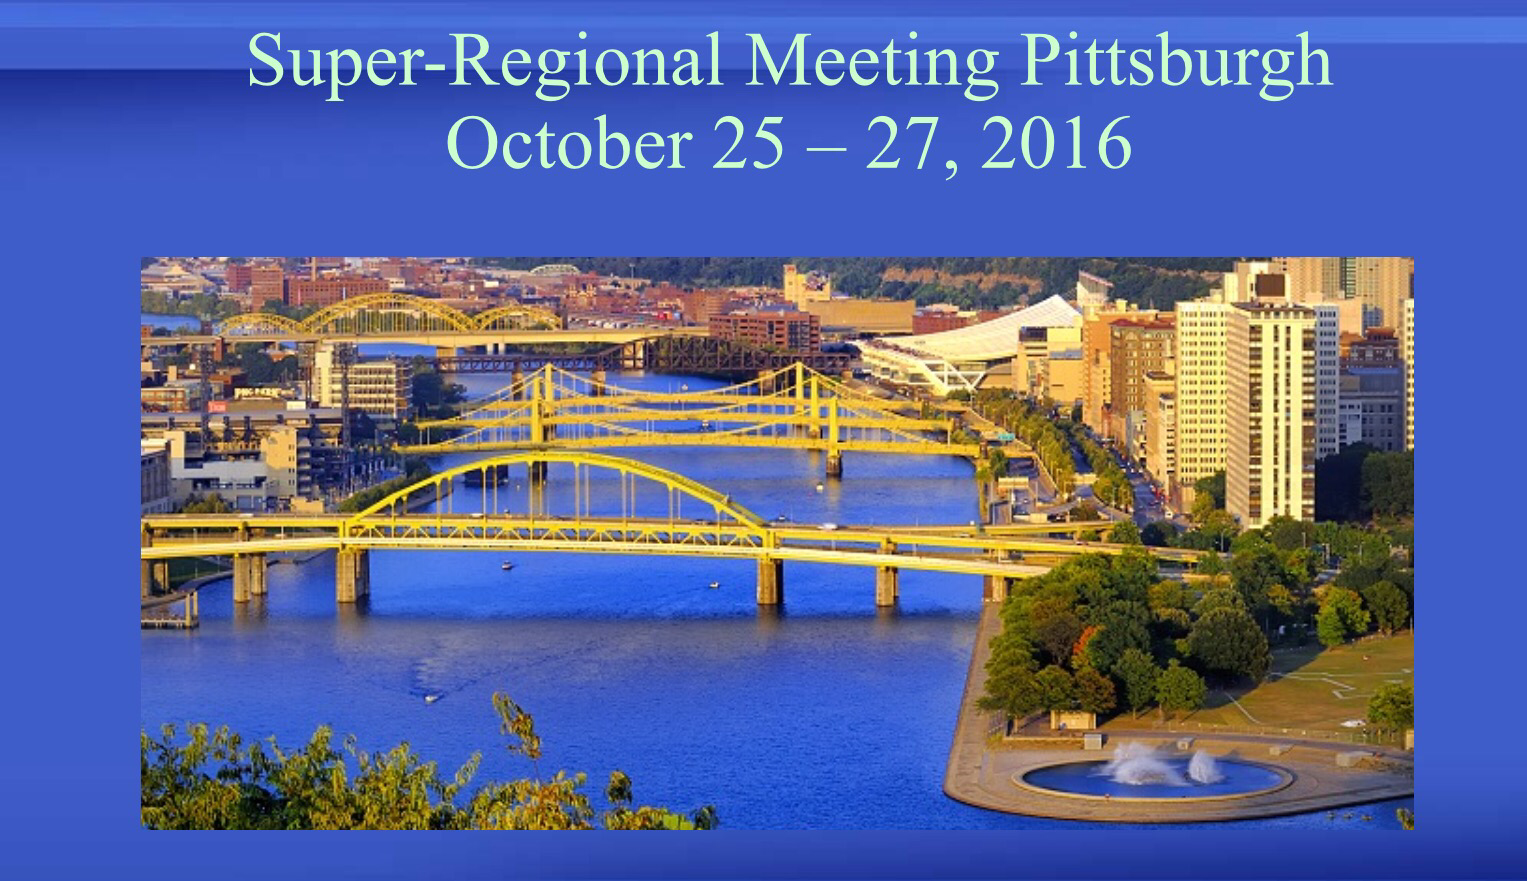 Save the Date for the 2016 Super-Regional Meeting!